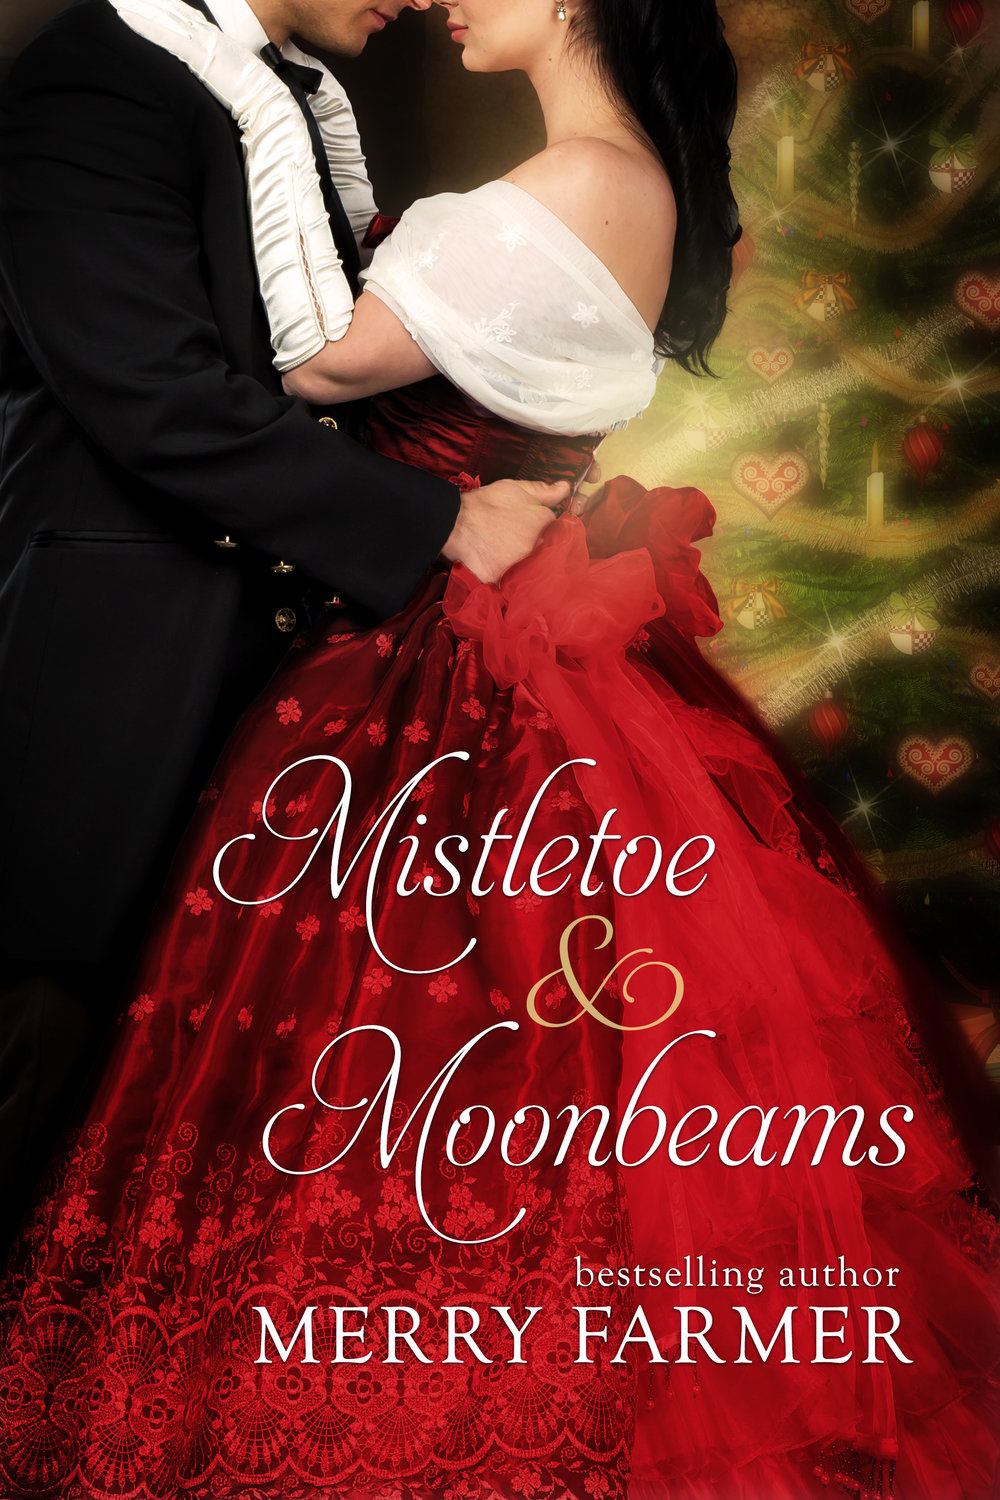 "Mistletoe & Moonbeams - Available for the first time on its own…Miranda Clarke is a respectable, proper woman. So when she inherits The Holey Bucket Saloon in Mistletoe, Montana from her Uncle Buford, she is livid. She feels she has no other choice than to travel to Mistletoe and keep the place open, since that's what her uncle wanted, but it is certainly not the life she wants to lead.Randall Sinclair is a traveling brush salesman with dreams of bigger things. That is, his father has dreams of bigger things for him. And drives him relentlessly to achieve them. Randall himself would be more than happy to live a quiet life in a quiet town with a loving wife. Especially when he finds himself faced with beautiful and inimitable saloonkeeper, Miranda.Their acquaintance seems doomed to be a brief one, two ships passing in the night…until a blizzard traps them alone in the saloon together. With nothing to do but clean up the saloon and sort through their immediate and intense attraction, the final days approaching Christmas end up being anything but cold, but with so many expectations heaped on top of them, can ""Randy"" and ""Randi"" find a way to be together after the storm?PLEASE BE ADVISED – Steam Level: HotThis novella was originally part of a box set—Wild Western Women in Mistletoe, Montana. Look for other books in this series including:Mail-Order Merry, by Kirsten OsbourneMistletoe Mistake, by Caroline ClemmonsMistletoe Scandal, by Sylvia McDaniel"